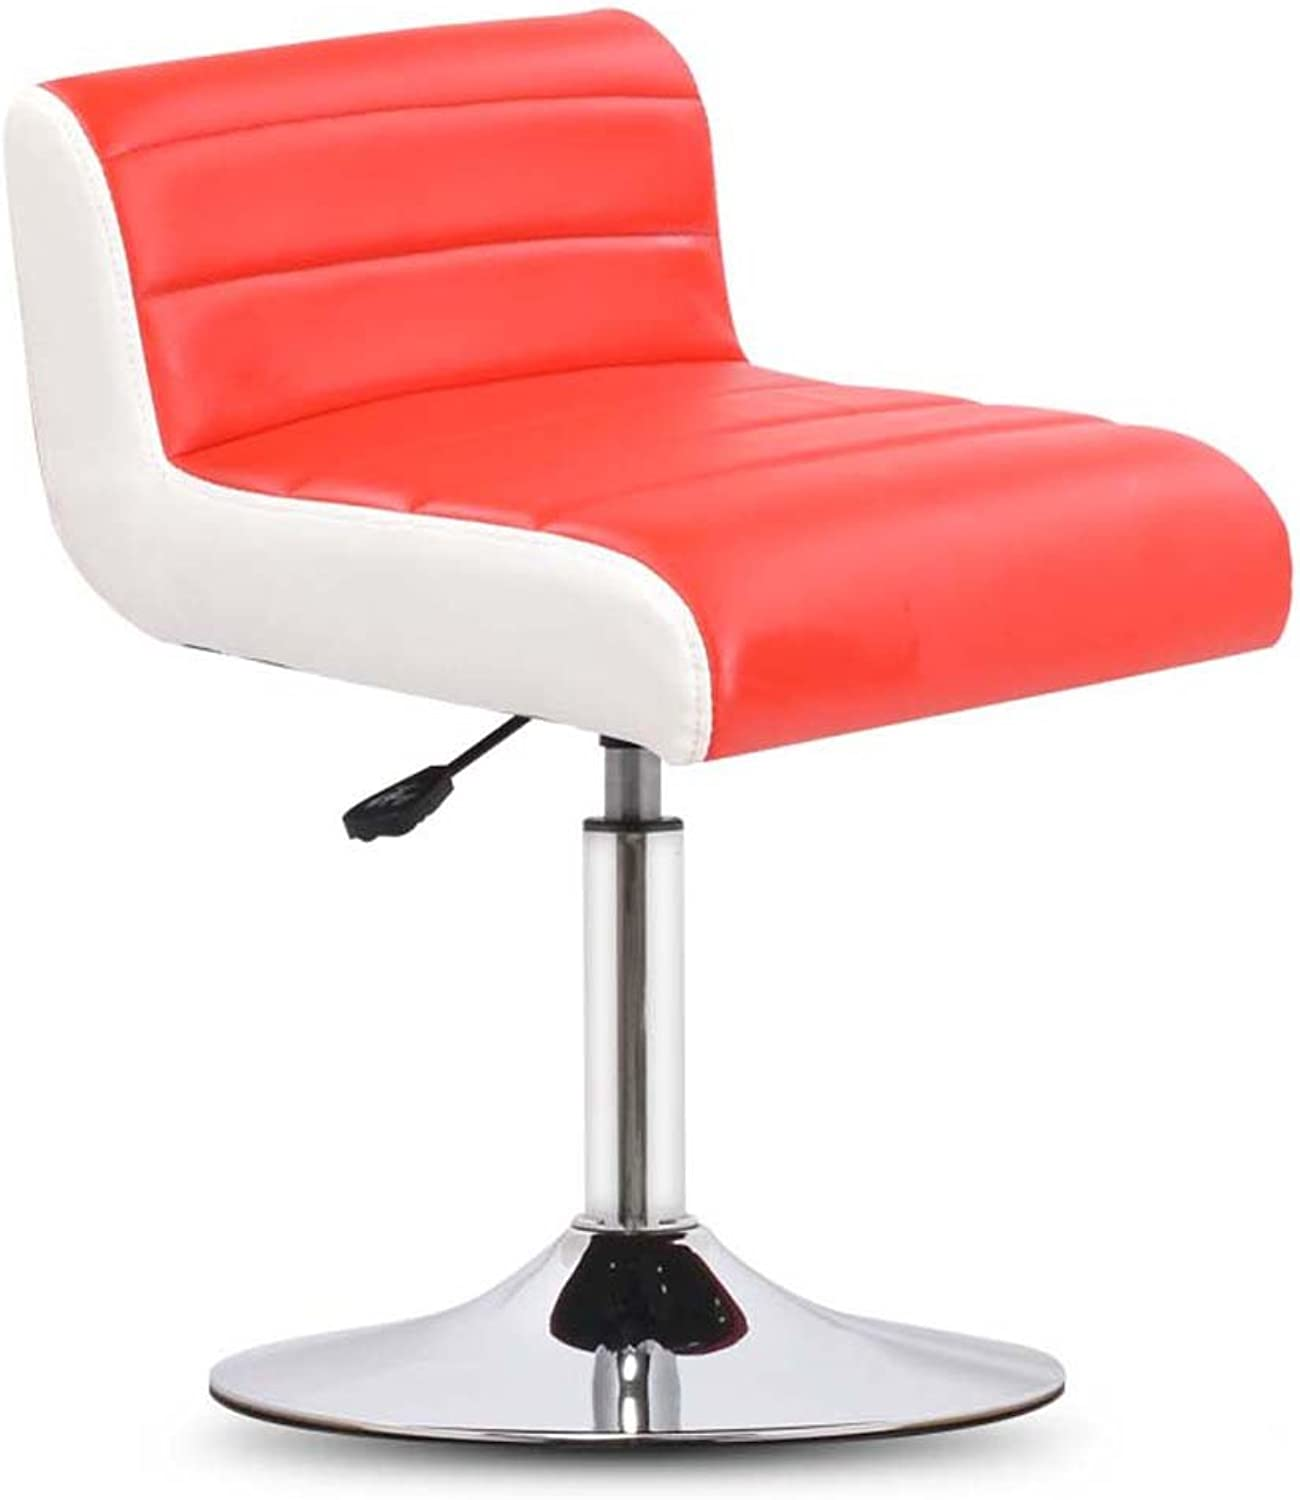 JAD@ Bar Stool Chair Lift redating bar Stool backrest Stool Barstools (color   Red)